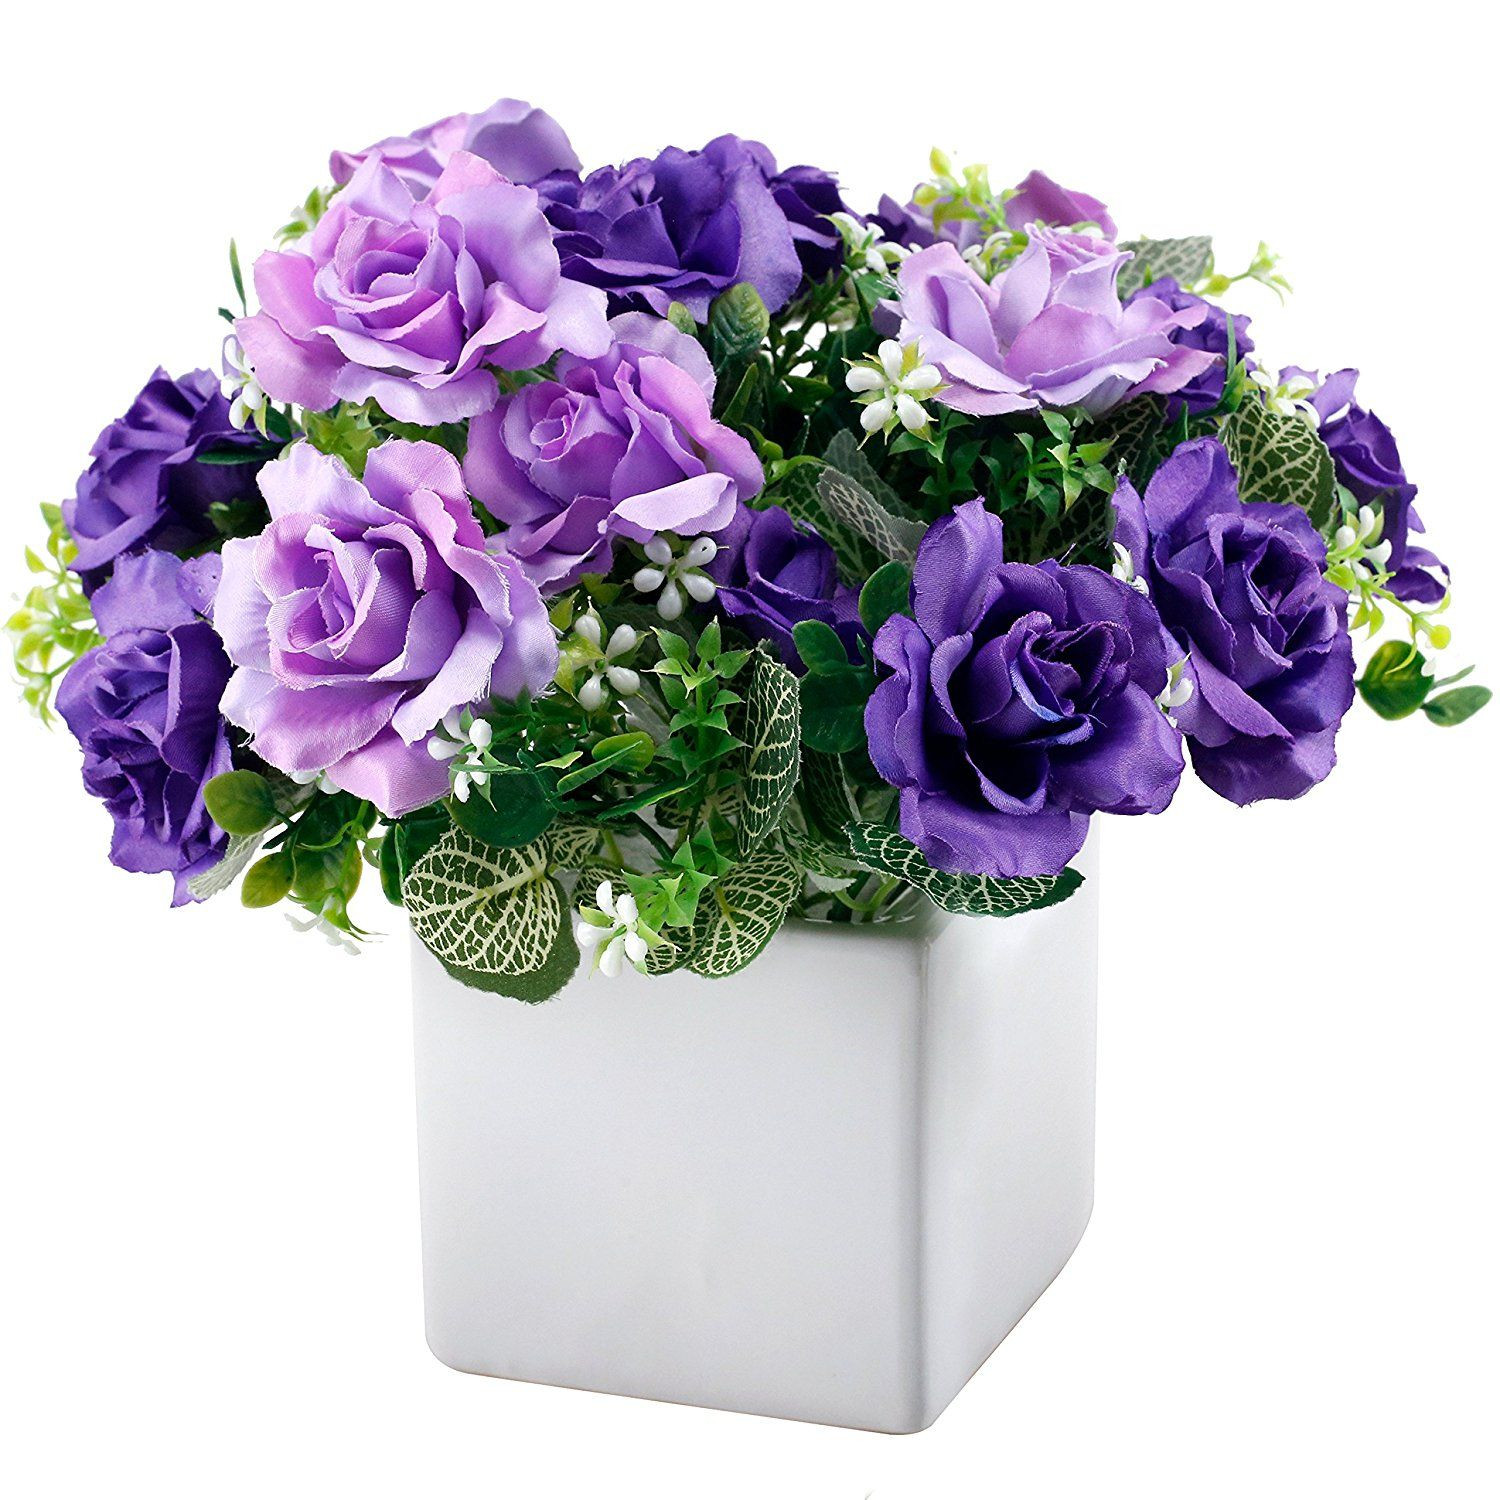 flower vases with artificial flowers of artificial purple rose flower arrangement in 4 inch square white regarding artificial purple rose flower arrangement in 4 inch square white ceramic vase learn